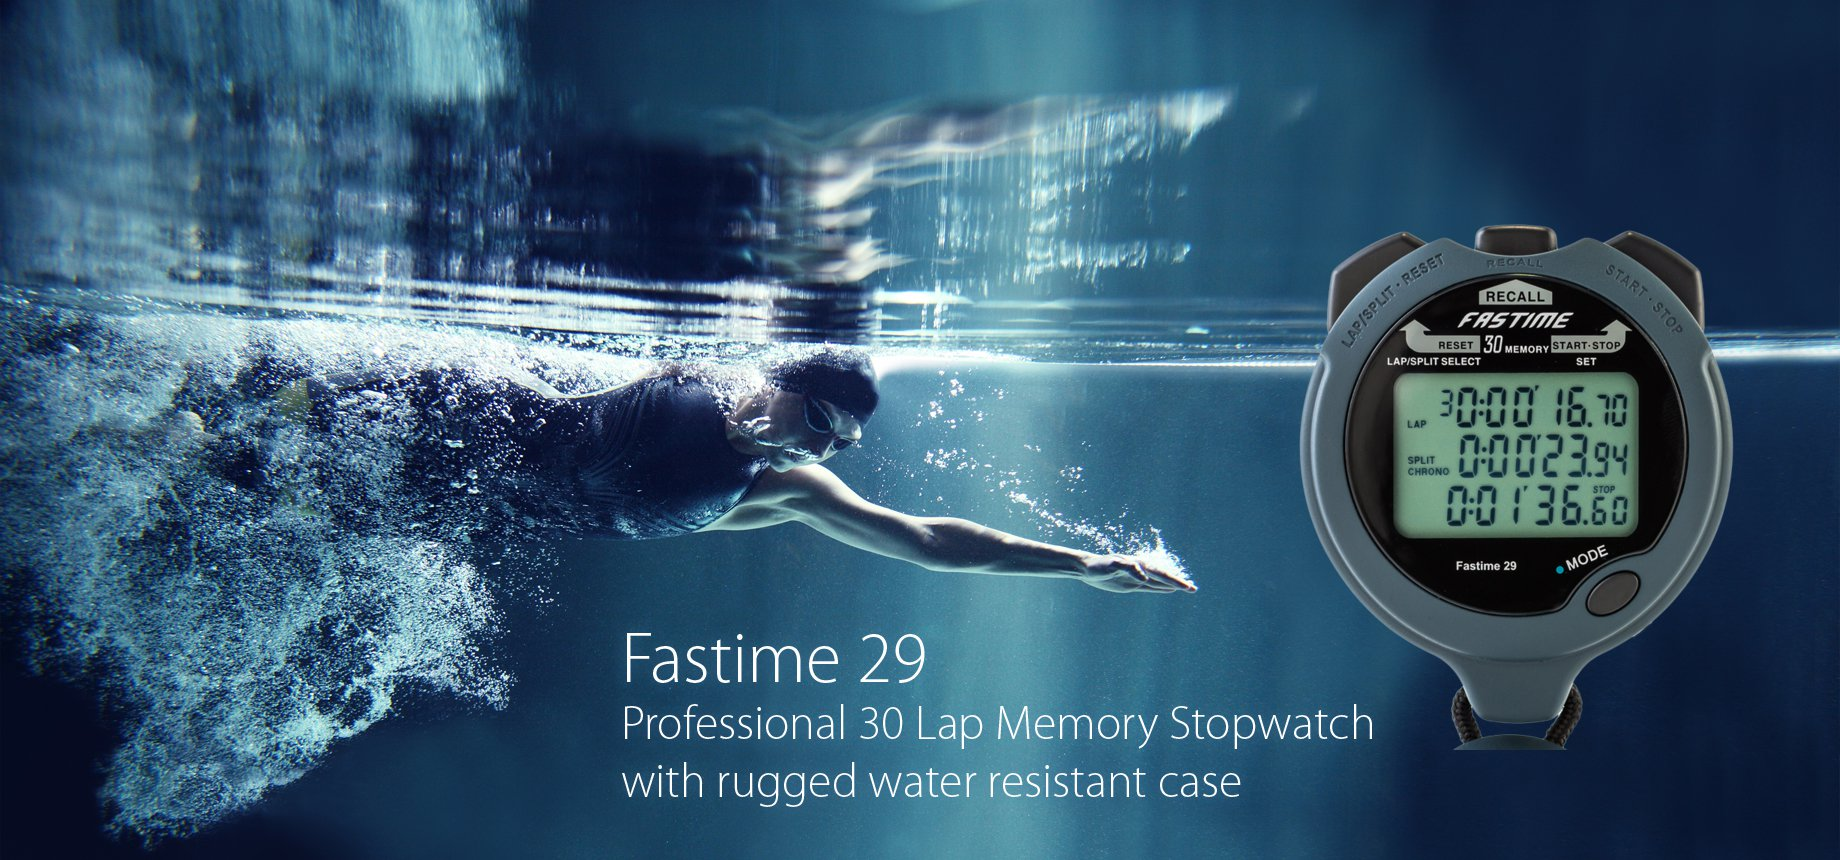 Fastime 29 - Professional 30 Lap Memory Stopwatch